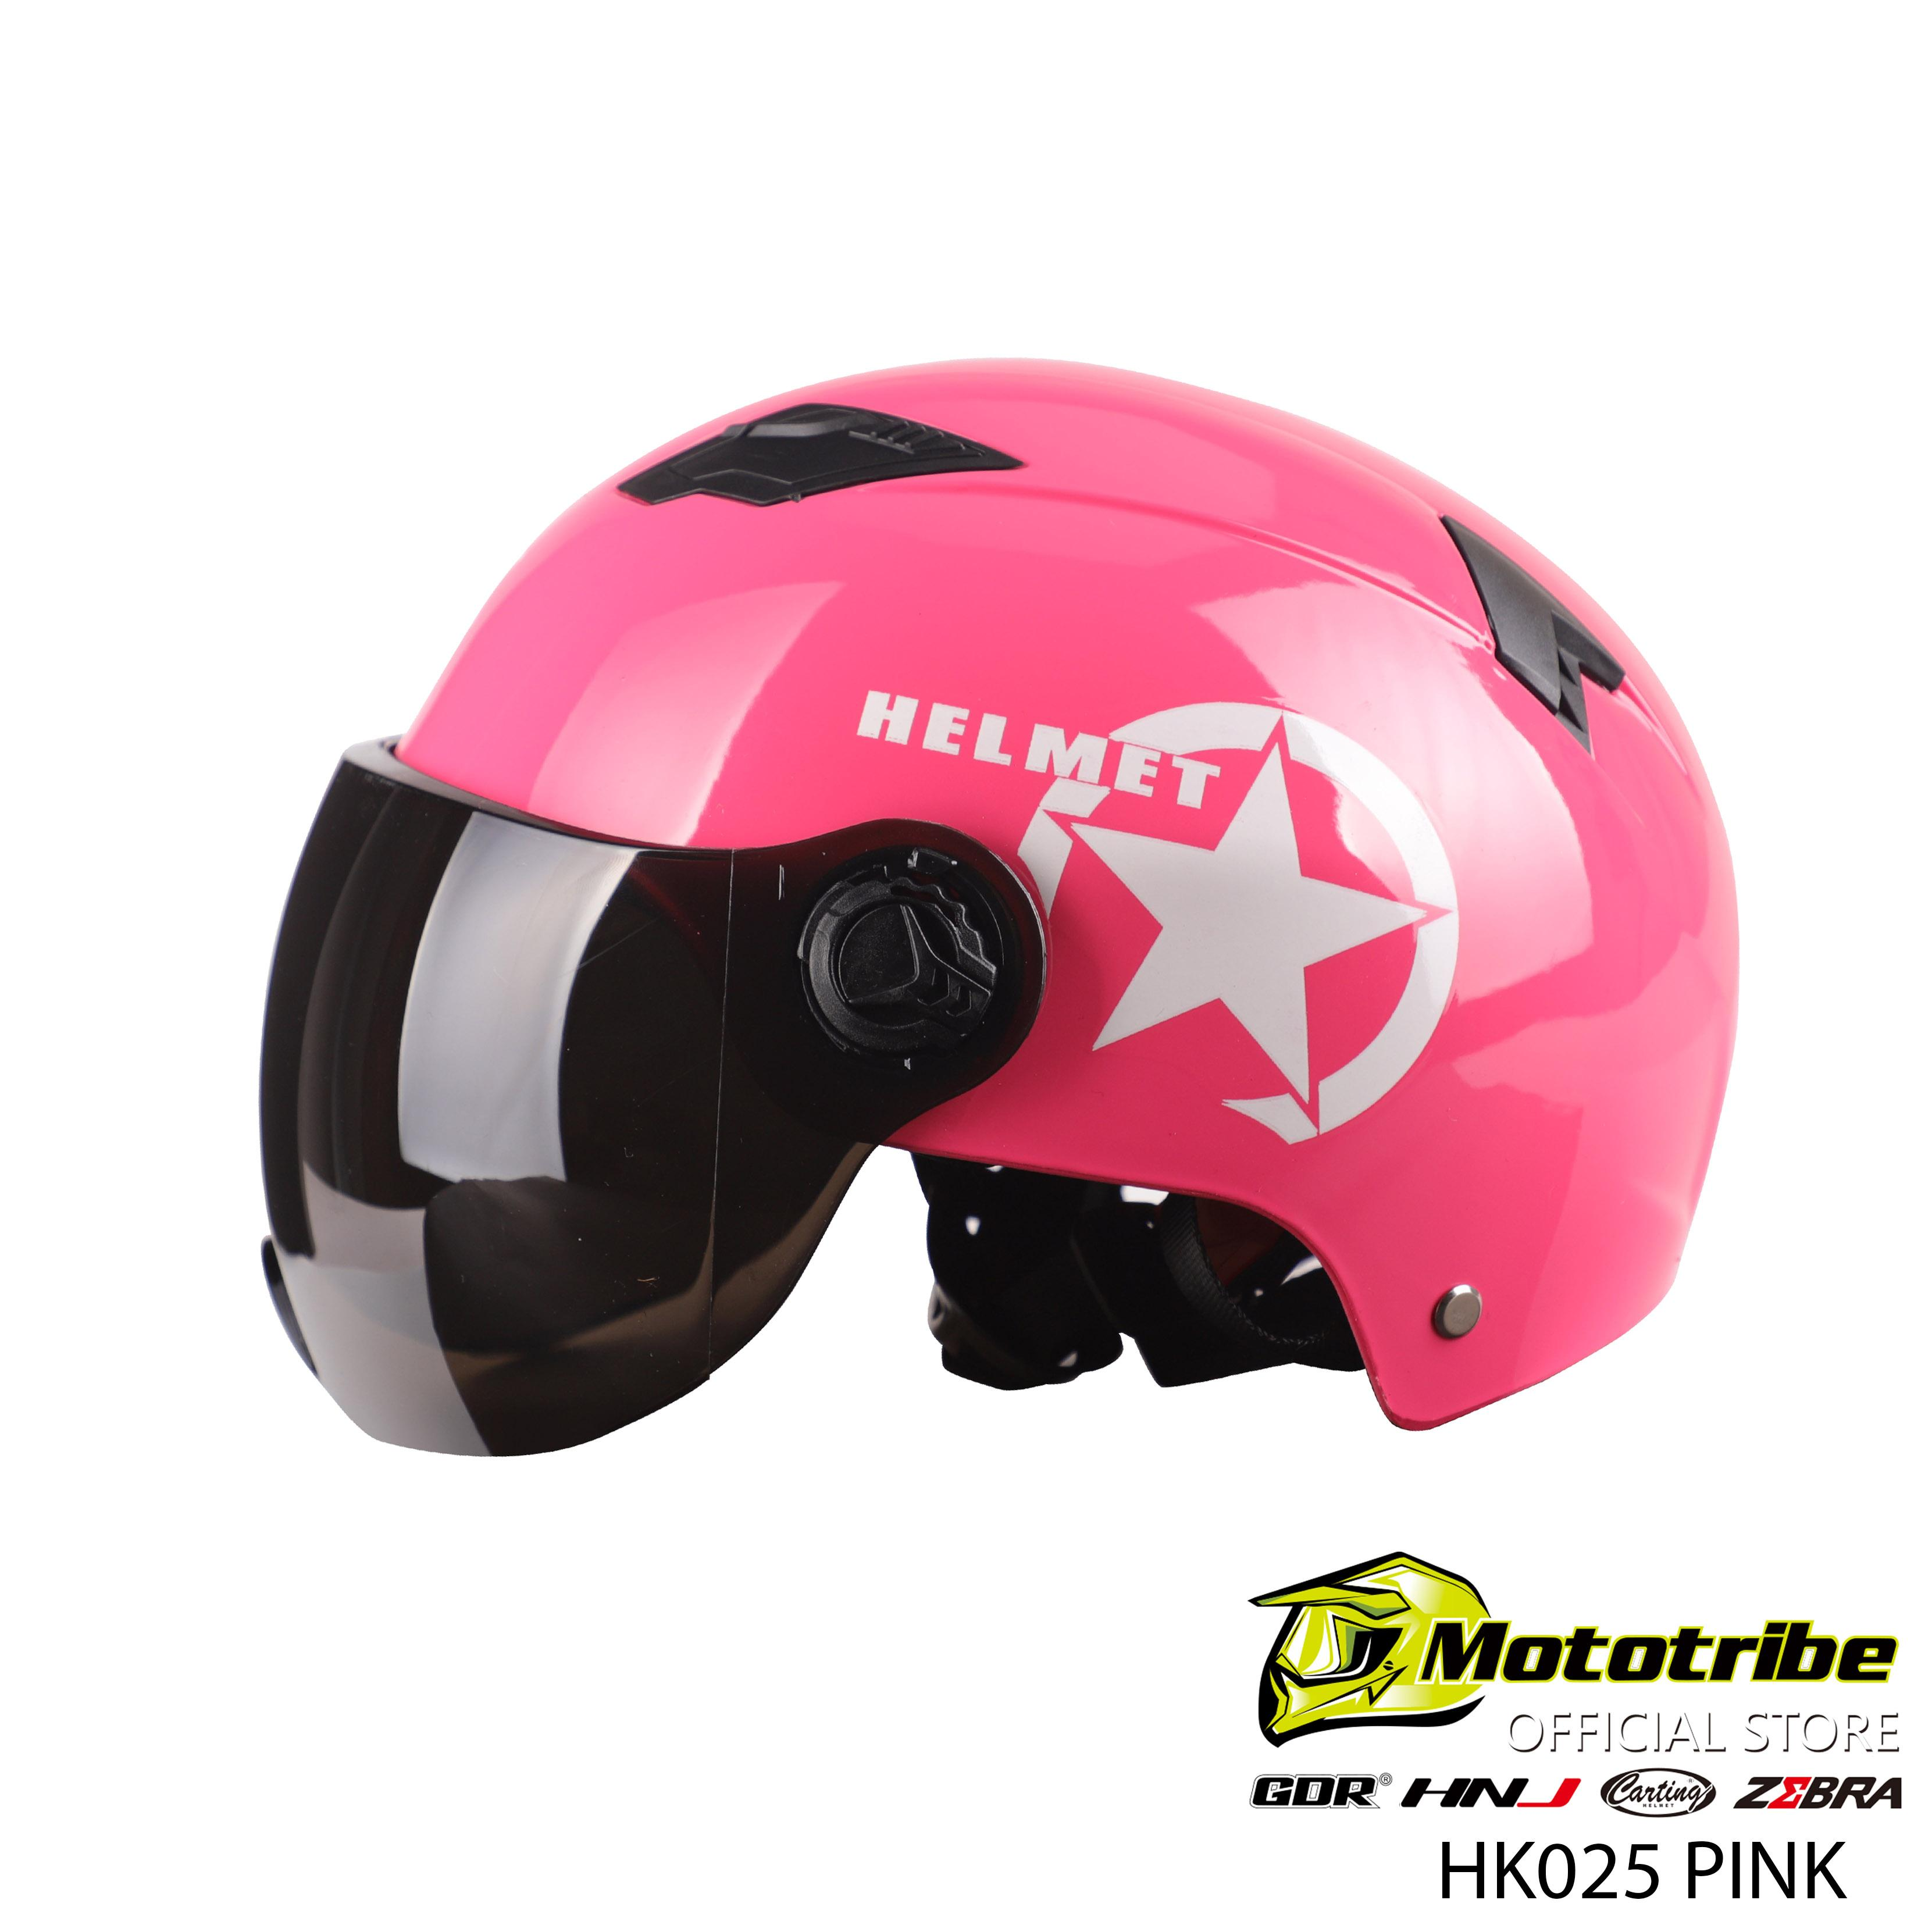 c16019db Helmets for sale - Motorcycle Helmets Online Deals & Prices in Philippines  | Lazada.com.ph